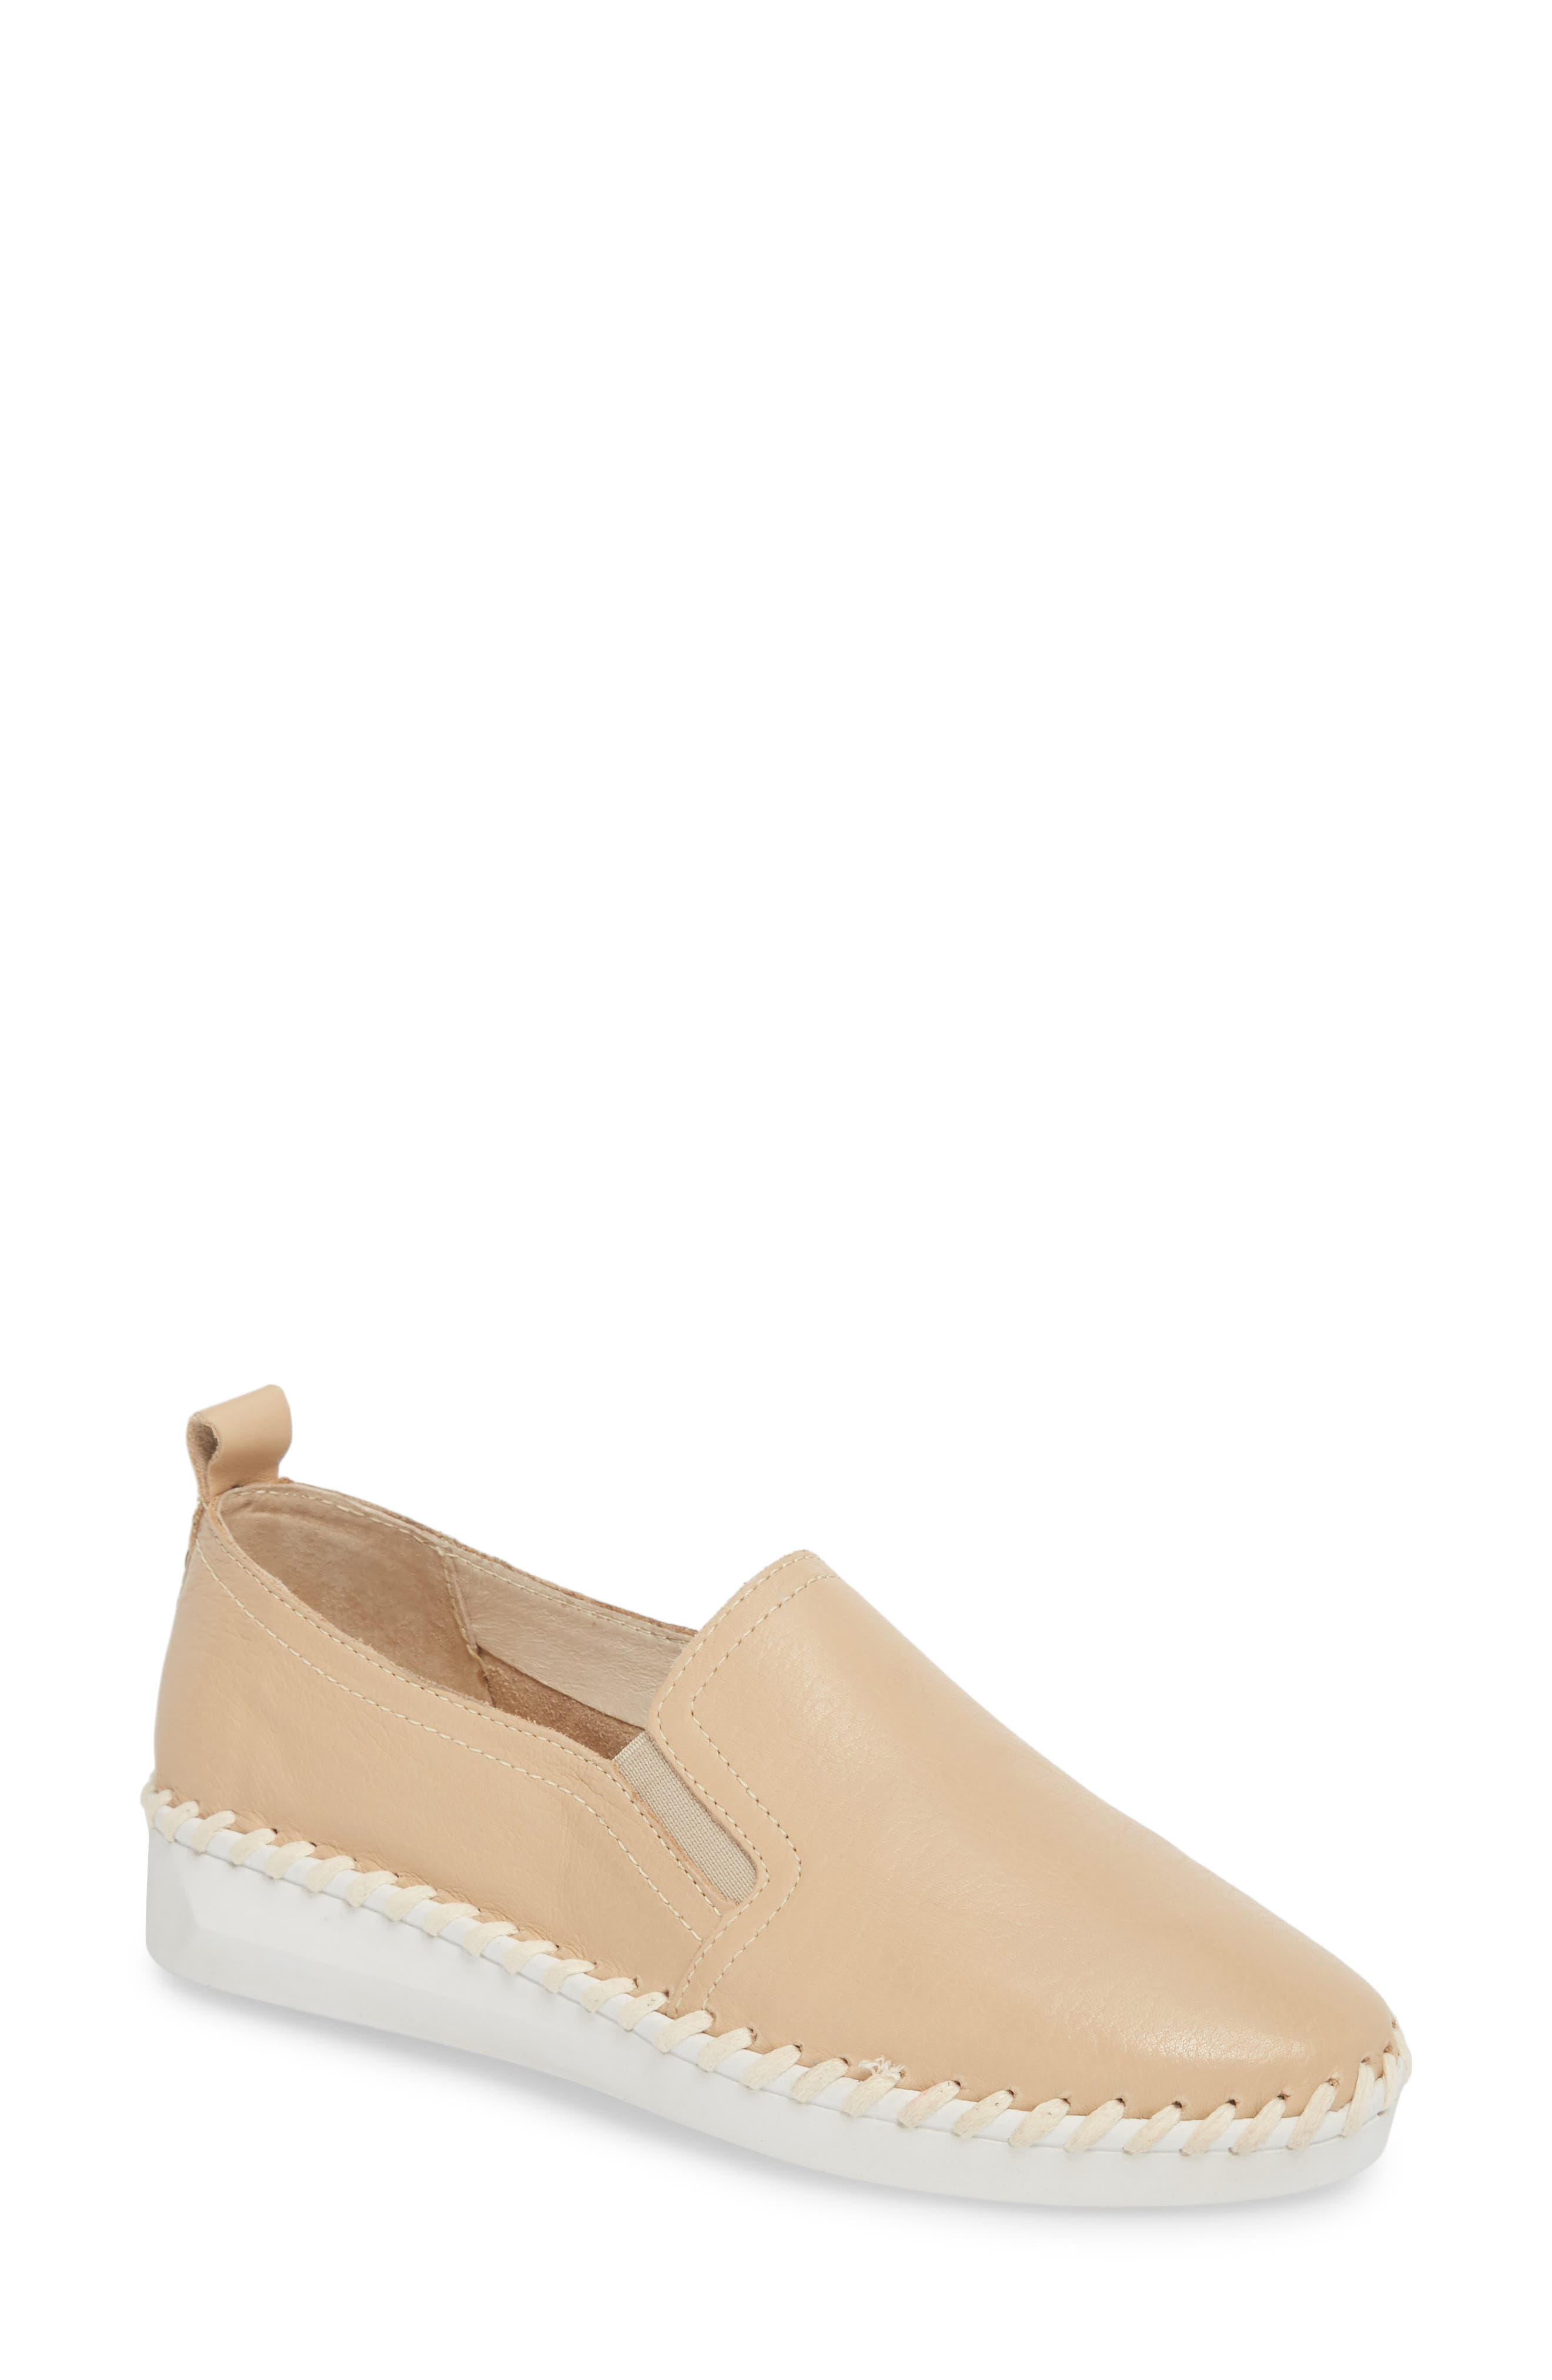 TW85 Slip-On Sneaker,                         Main,                         color, NUDE LEATHER